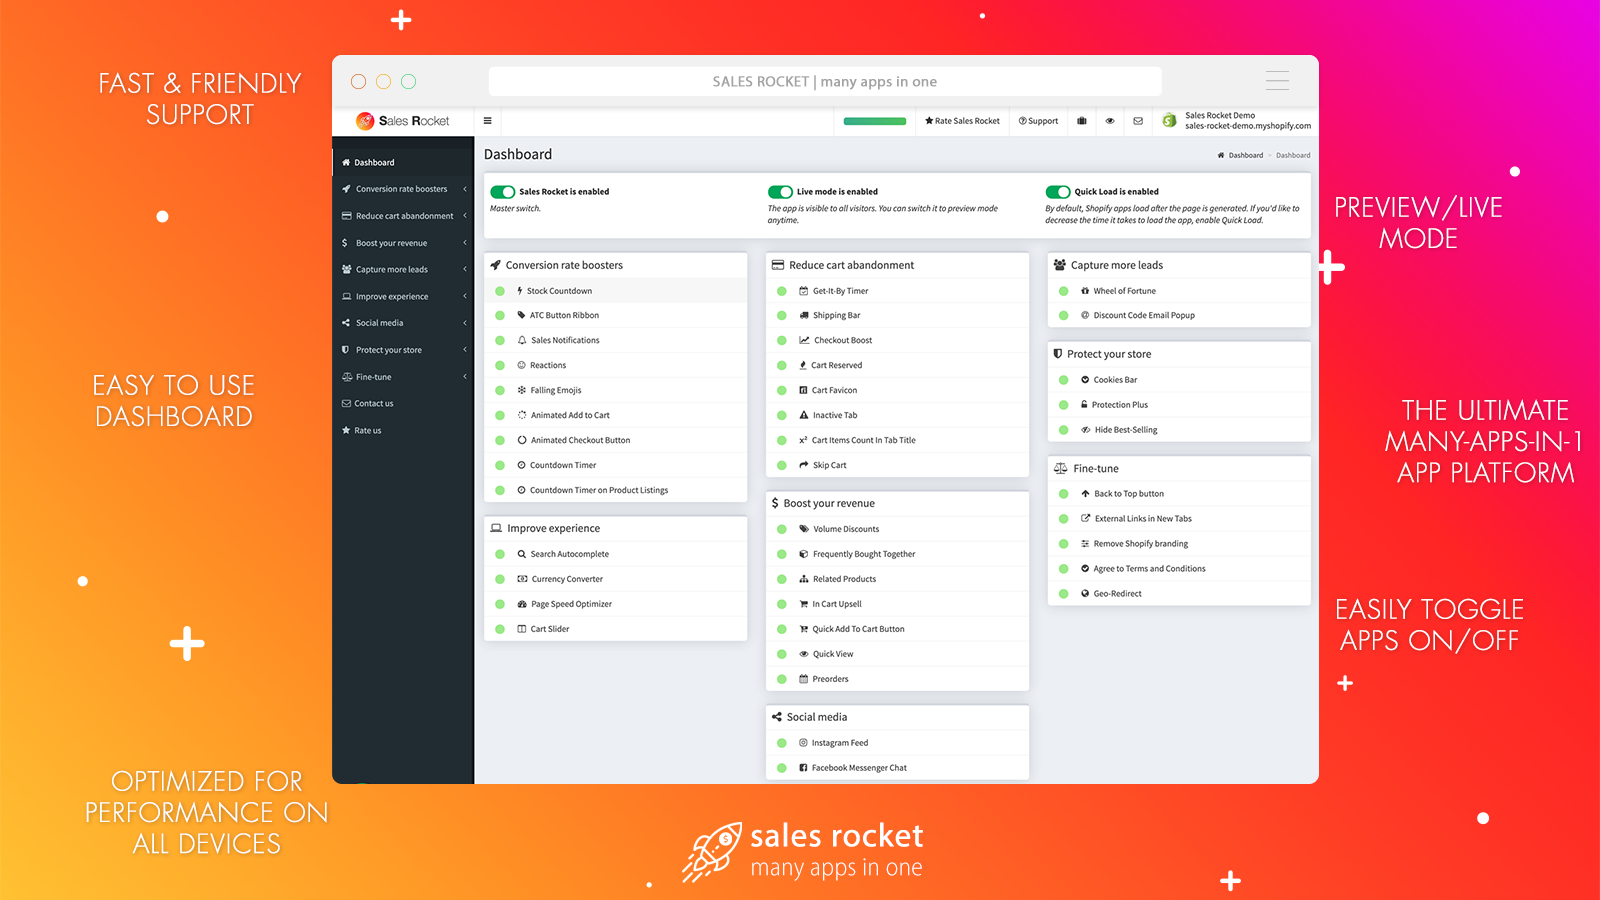 SALES ROCKET - the ultimate many-apps-in-one app